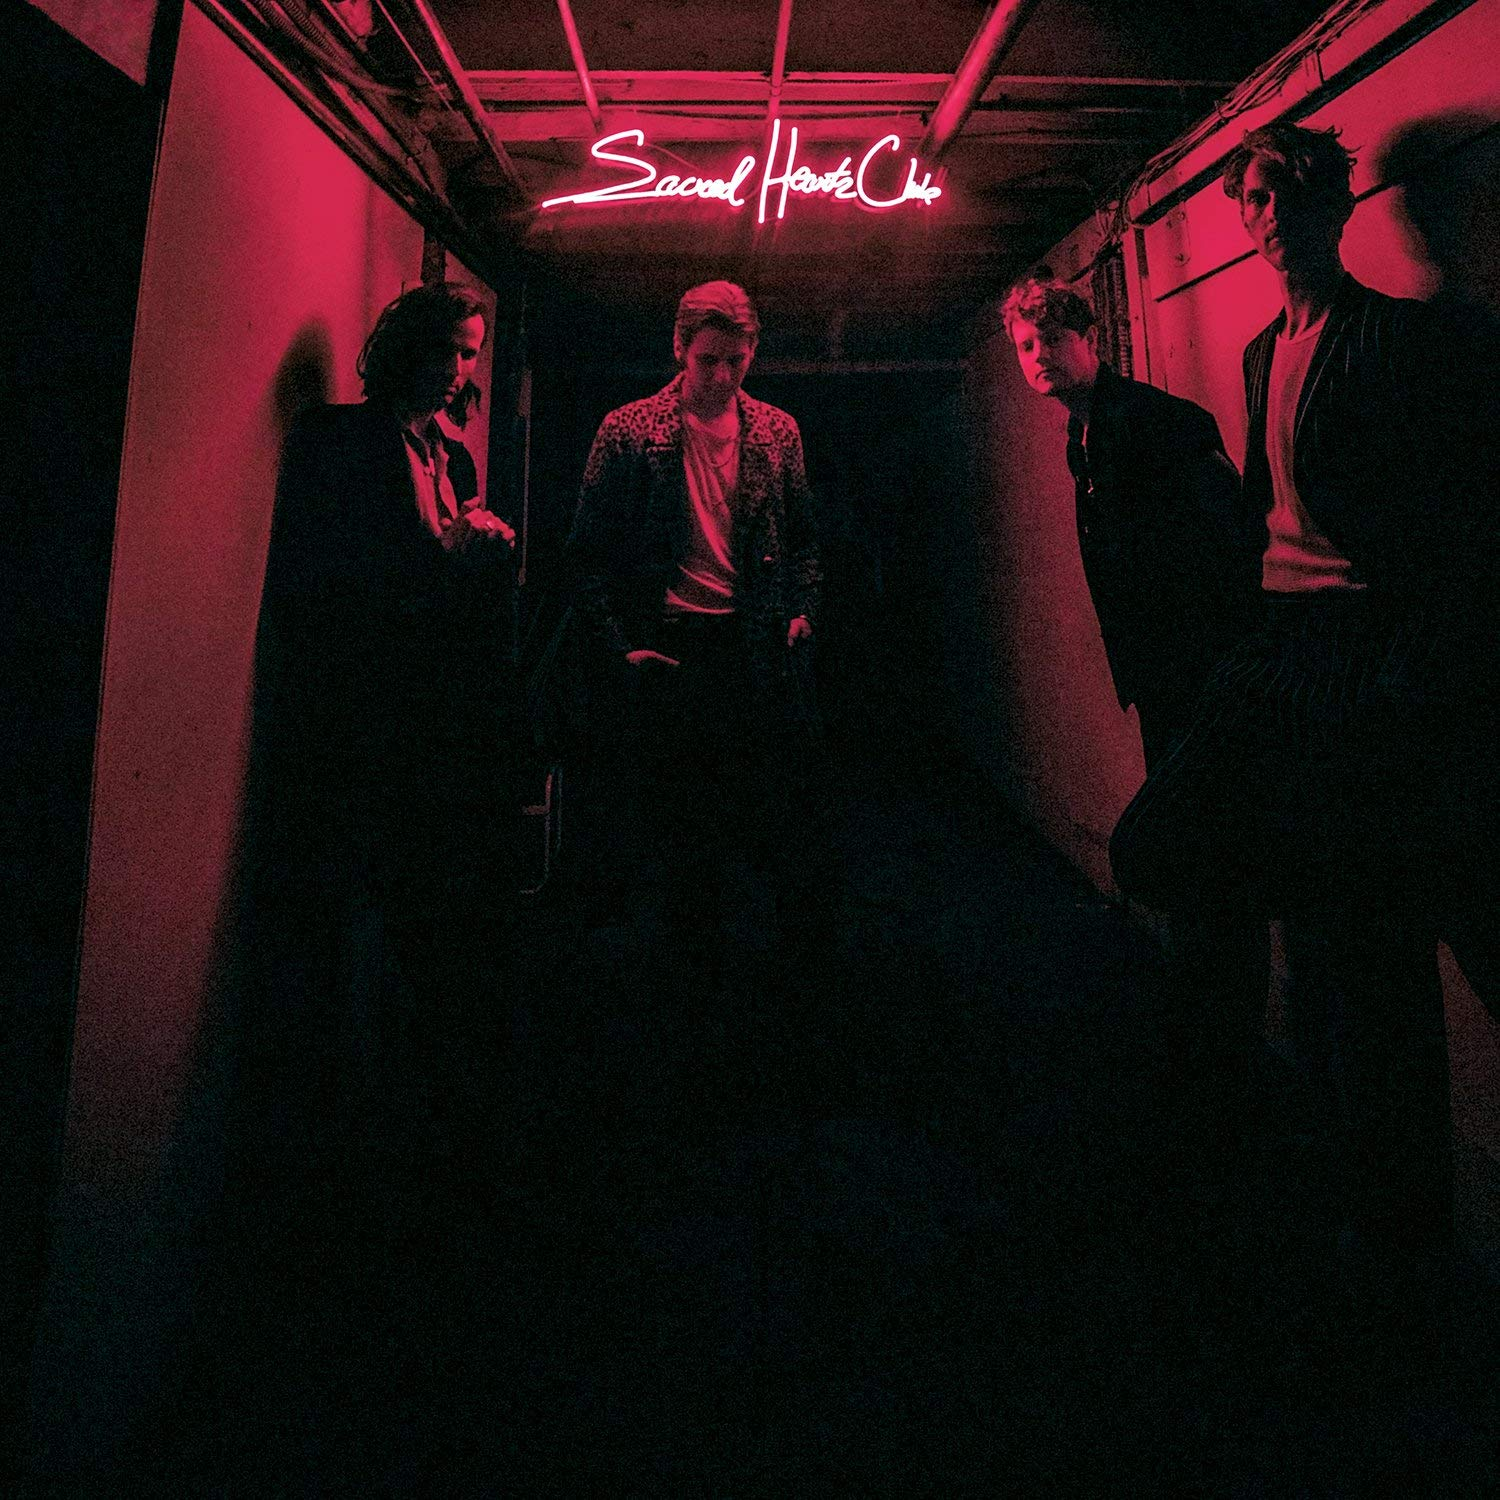 Sacred Hearts Club  by Foster The People (Image retrieved from https://www.amazon.com/Sacred-Hearts-Club-Foster-People/dp/B072MPK5FH)